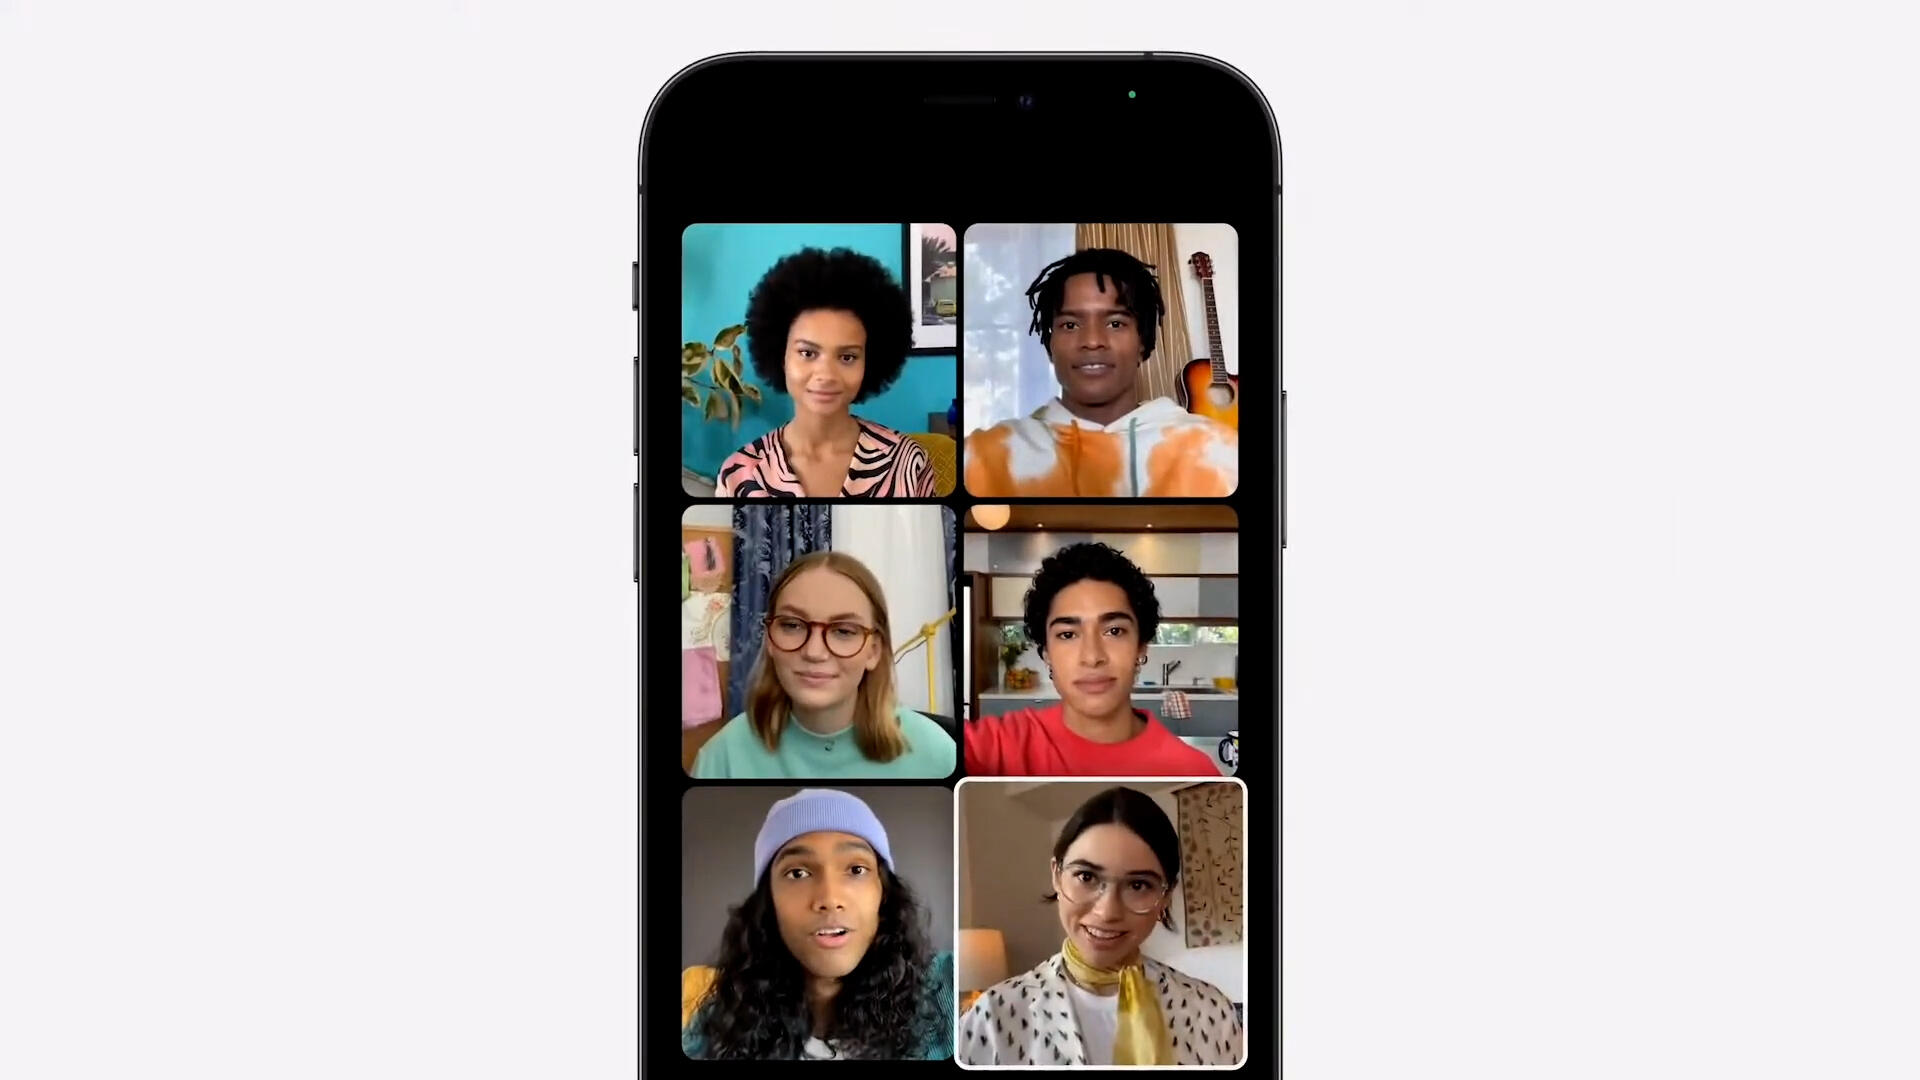 Video: Apple debuts new FaceTime features for iOS 15